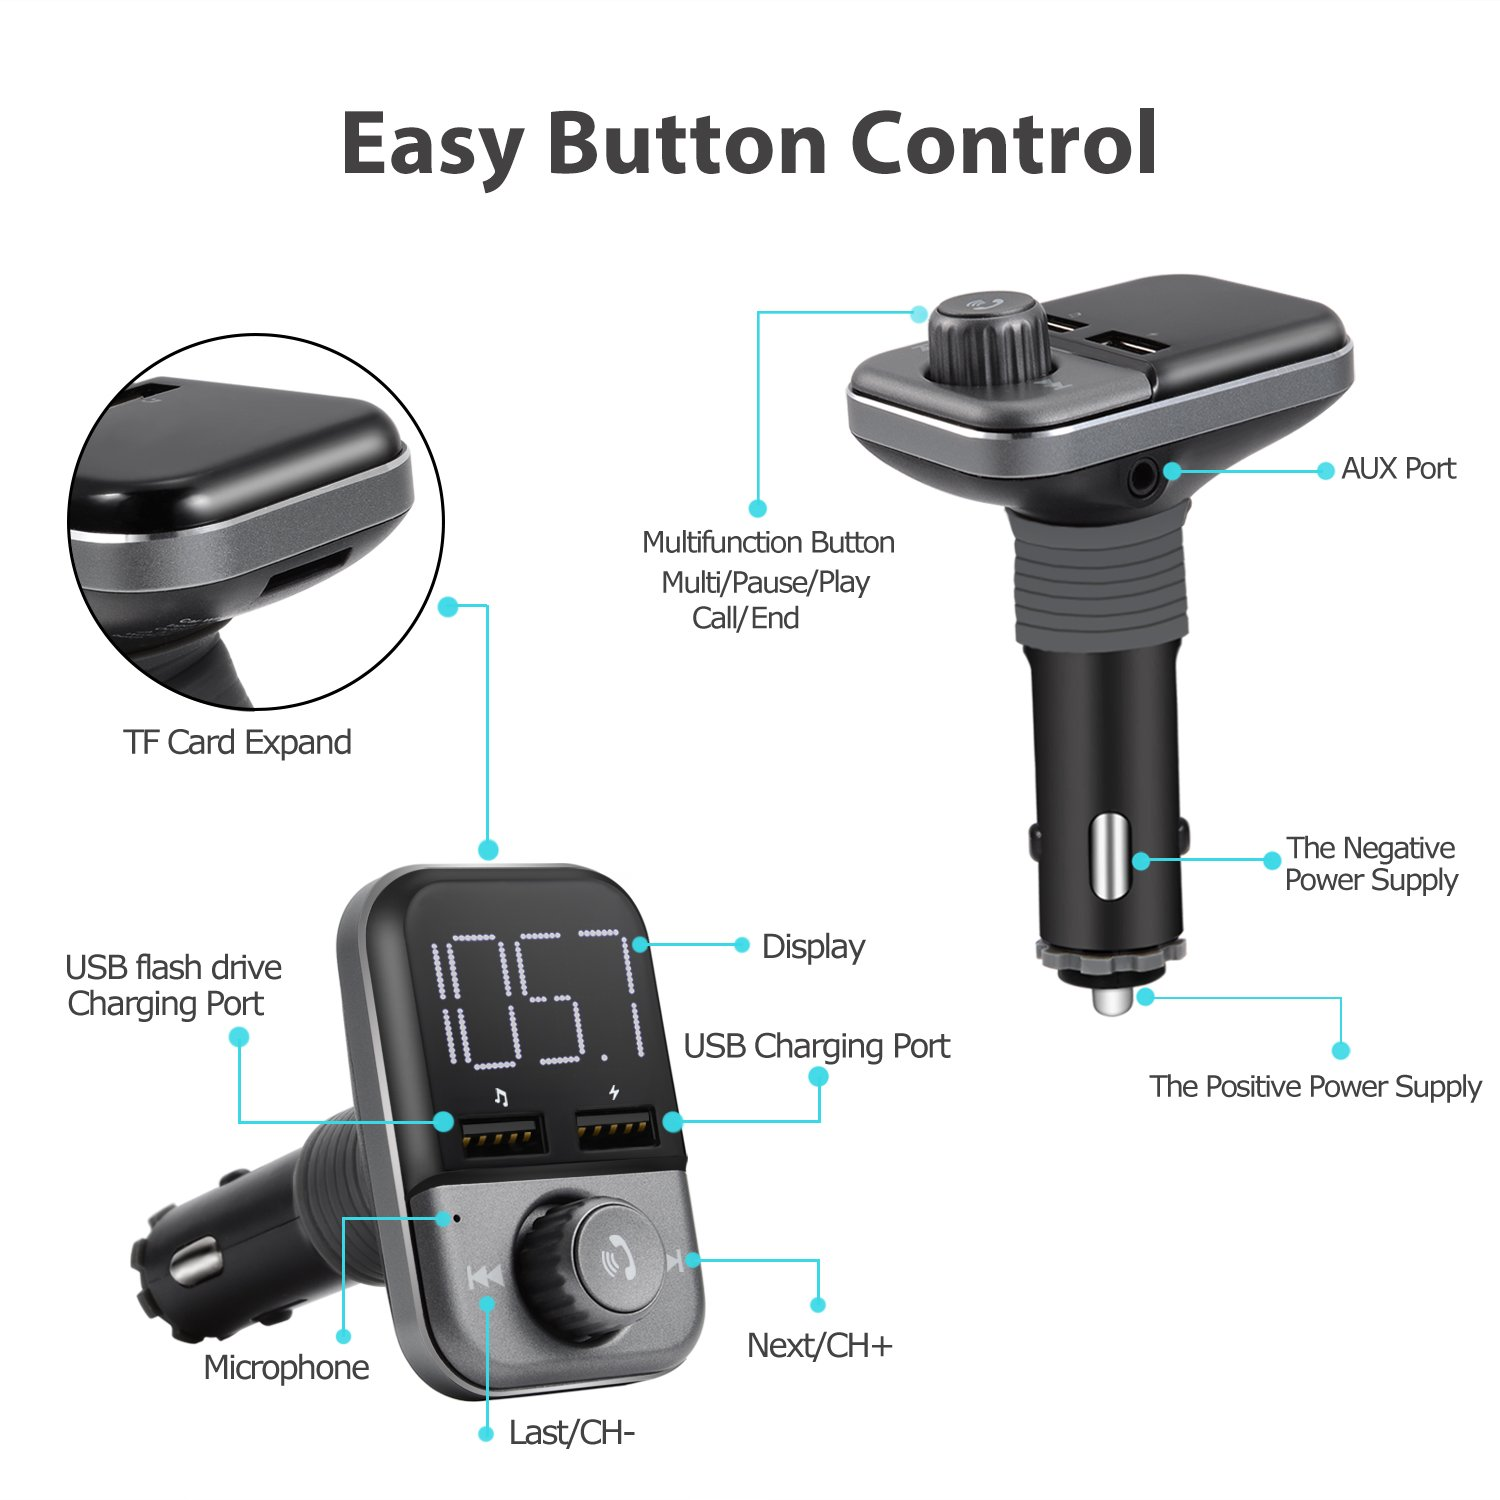 FM Transmitter Bluetooth 4.2 Wireless in-Car Radio FM Transmitter Kit Adapter W 1.4?¡À Display 2.4A Dual USB Car Charger Support TF/SD Card USB Flash Drive AUX Input/Output Car Audio by JMFONE (Image #6)